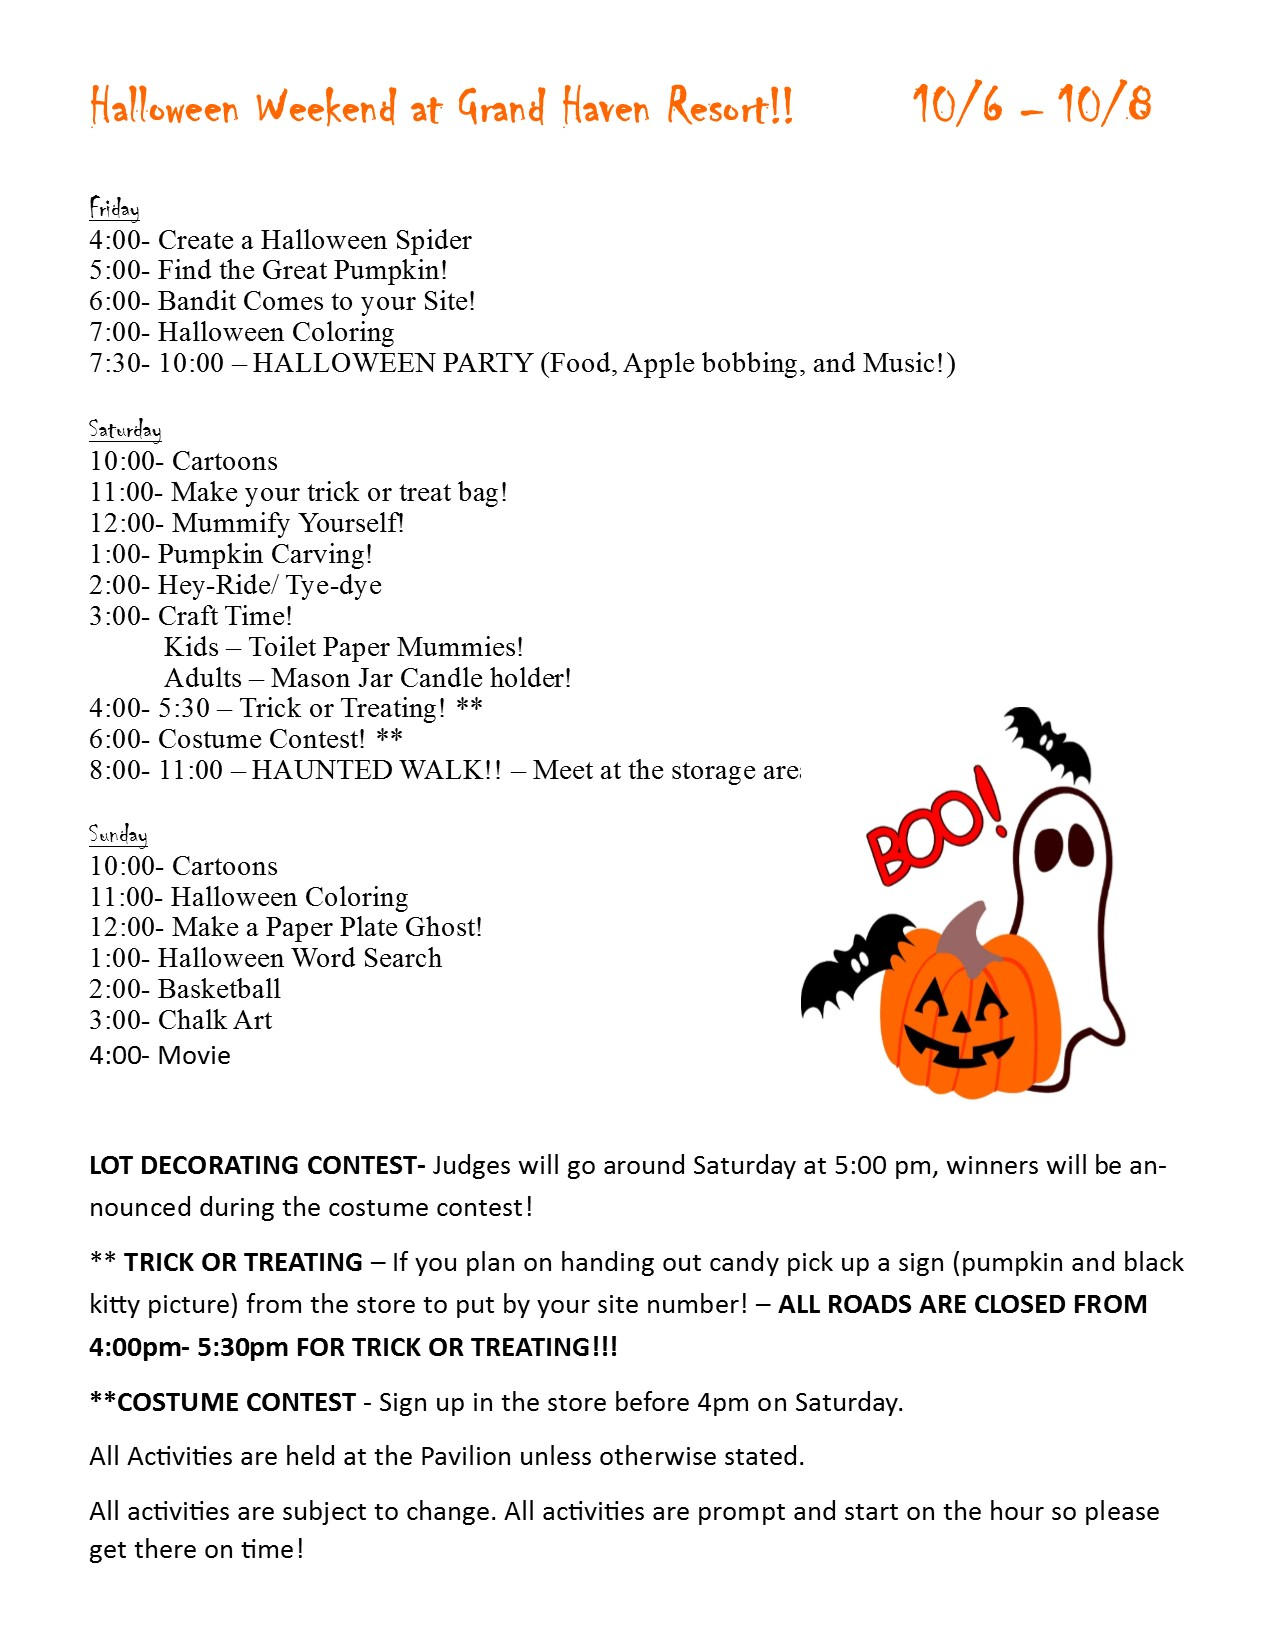 halloween 2017 gh - outdoor adventures resorts